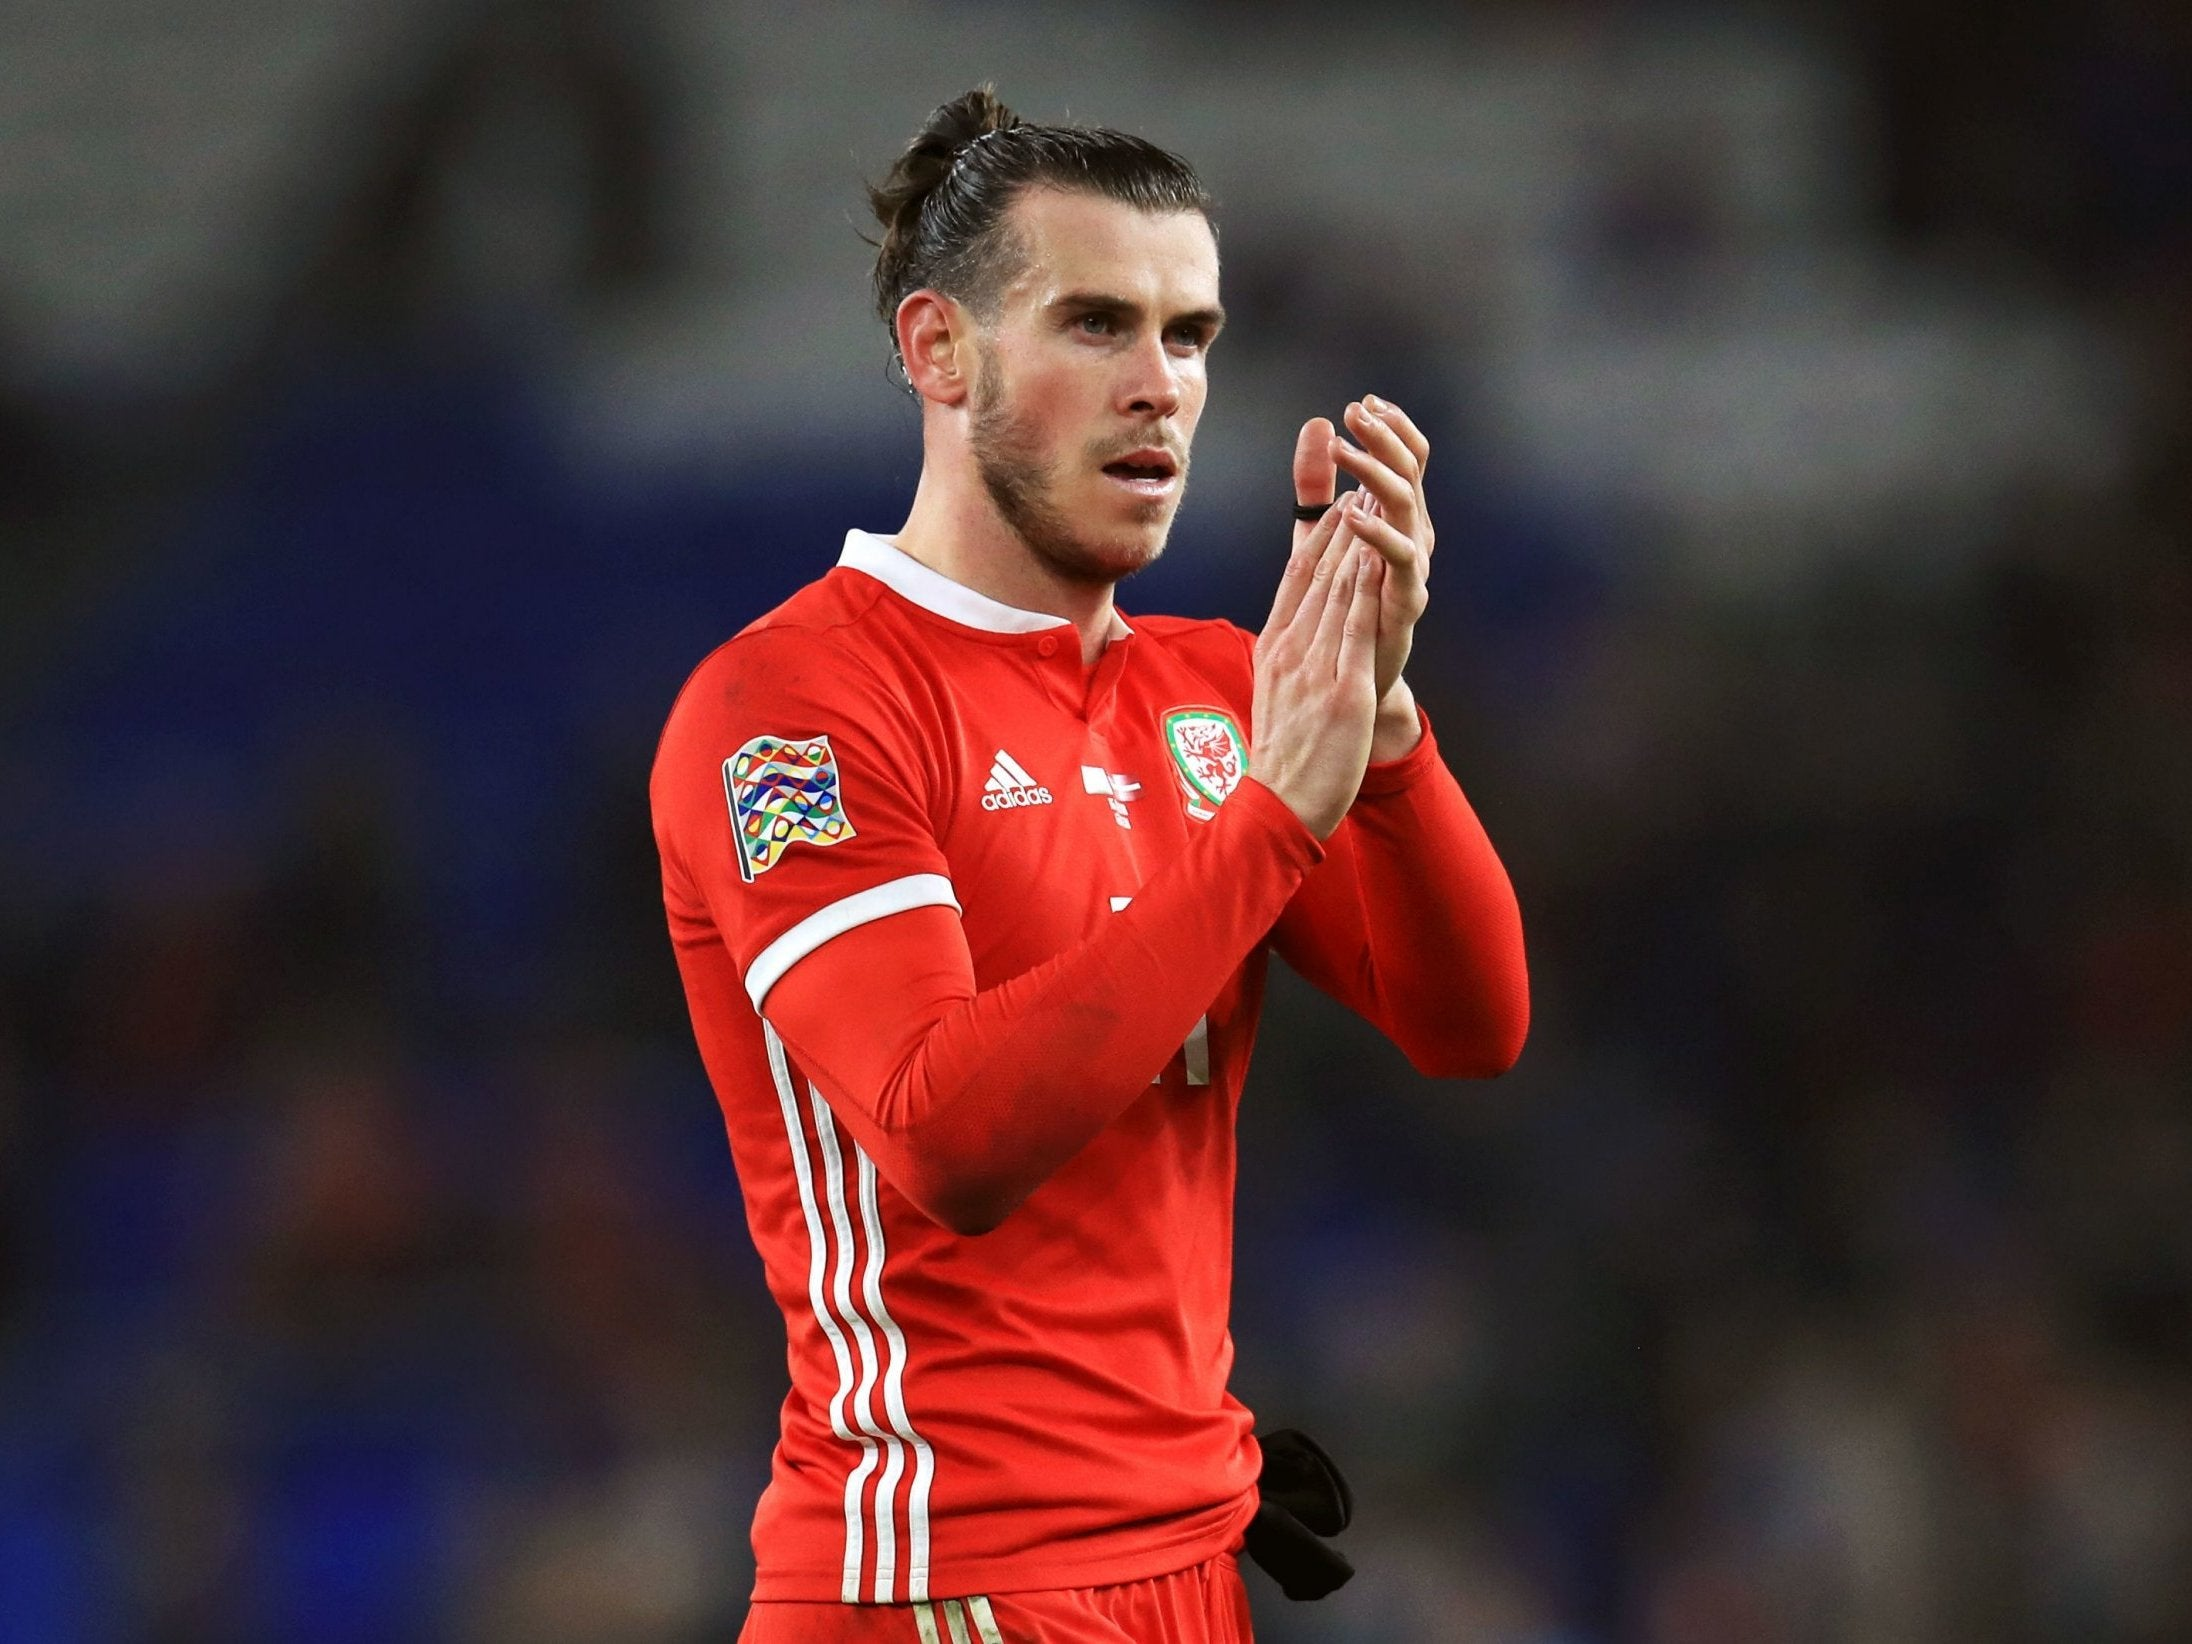 Wales vs Trinidad and Tobago: Ryan Giggs admits national side can't rely on Gareth Bale to win everything